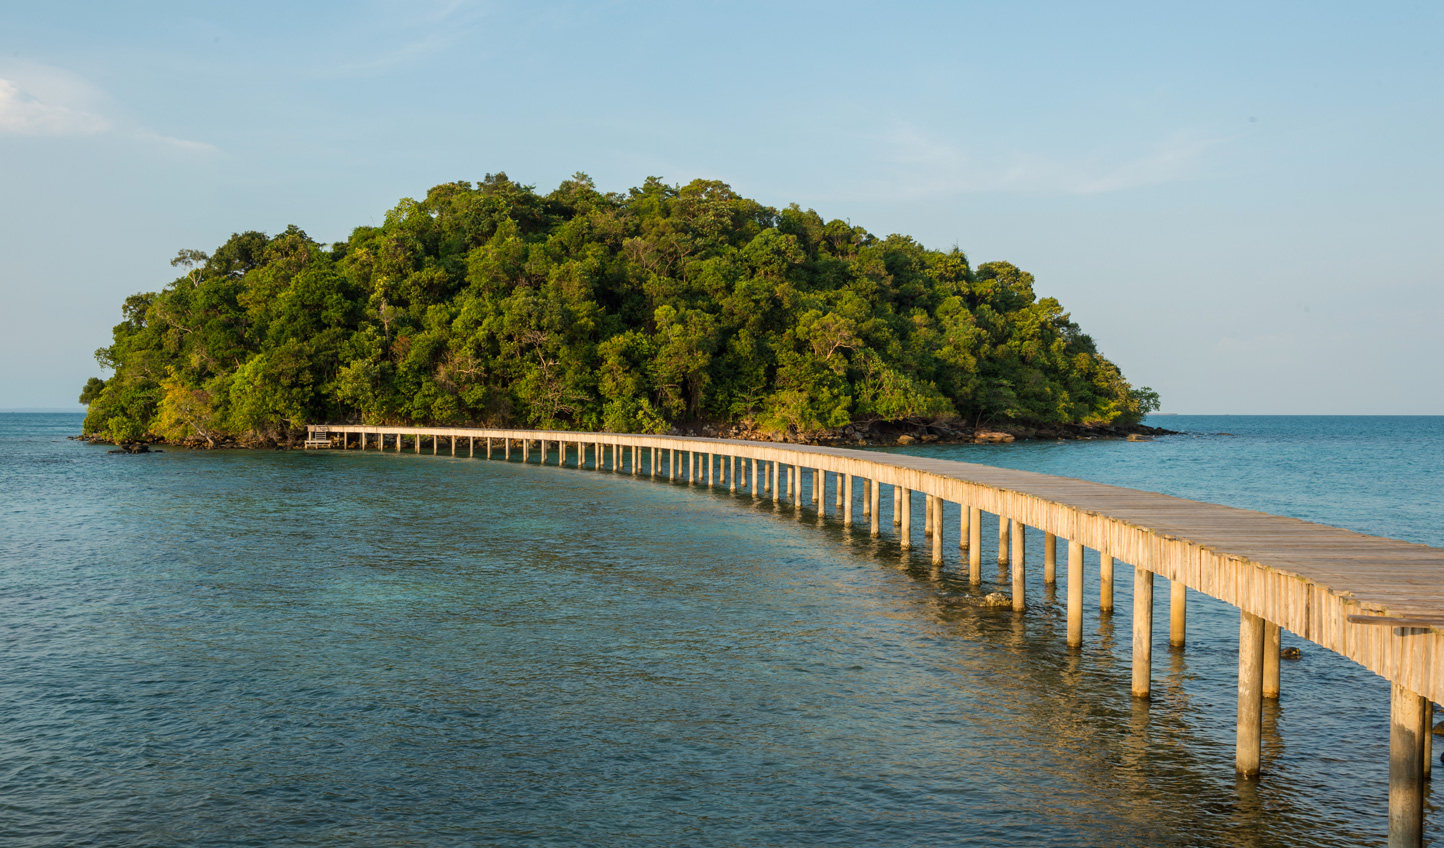 Escape civilisation and hop over to Koh Bon